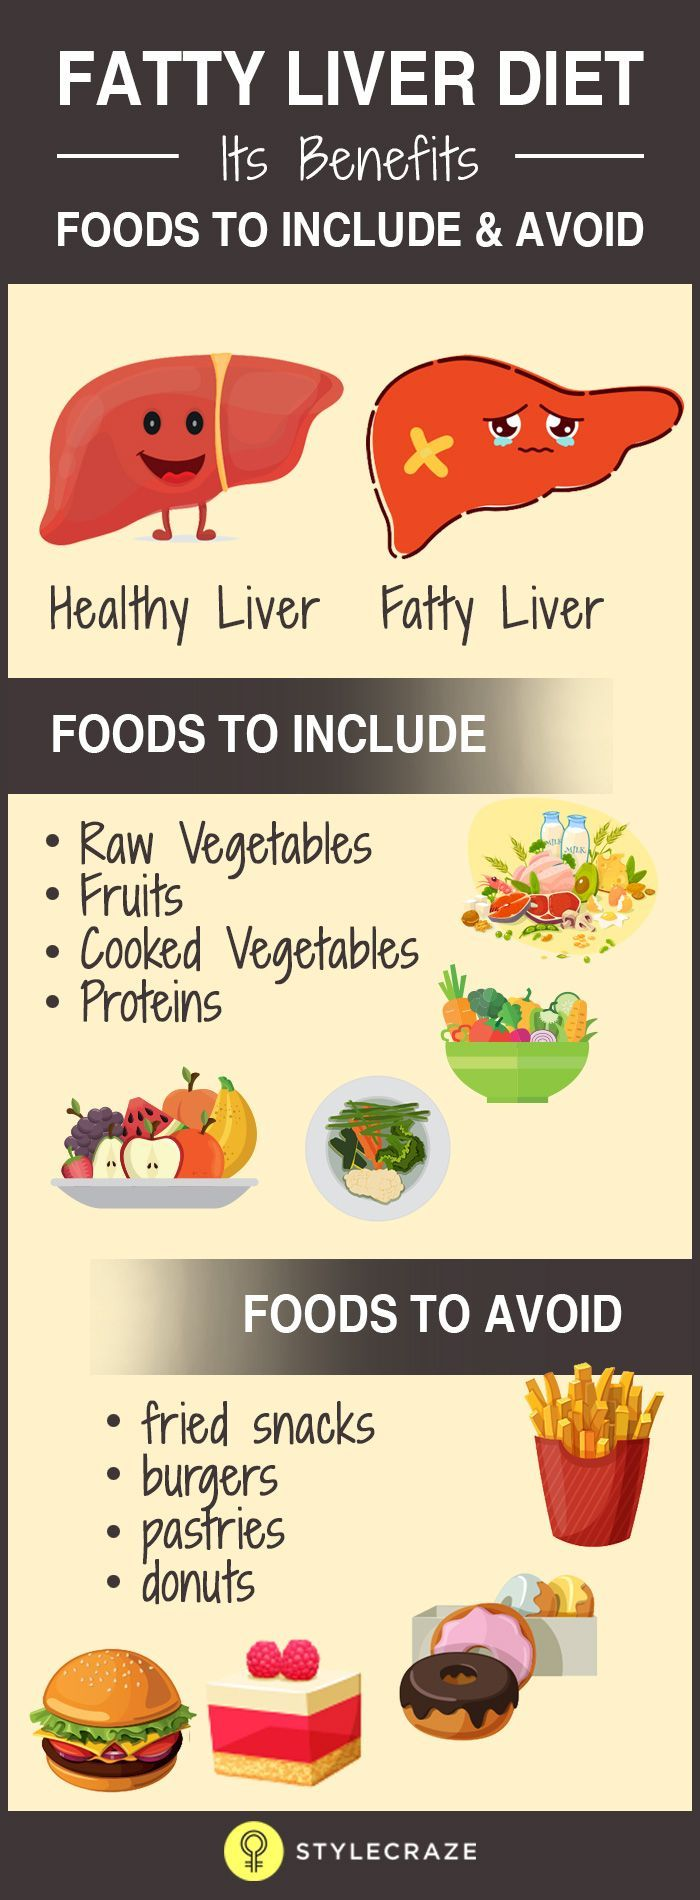 Non-alcoholic fatty liver disease, or NAFLD as it is also called, is one of the primary causes for liver diseases that are chronic all over the world. The disease can progress to liver failure, cirrhosis and liver cancer if proper care is not taken during its early stages.